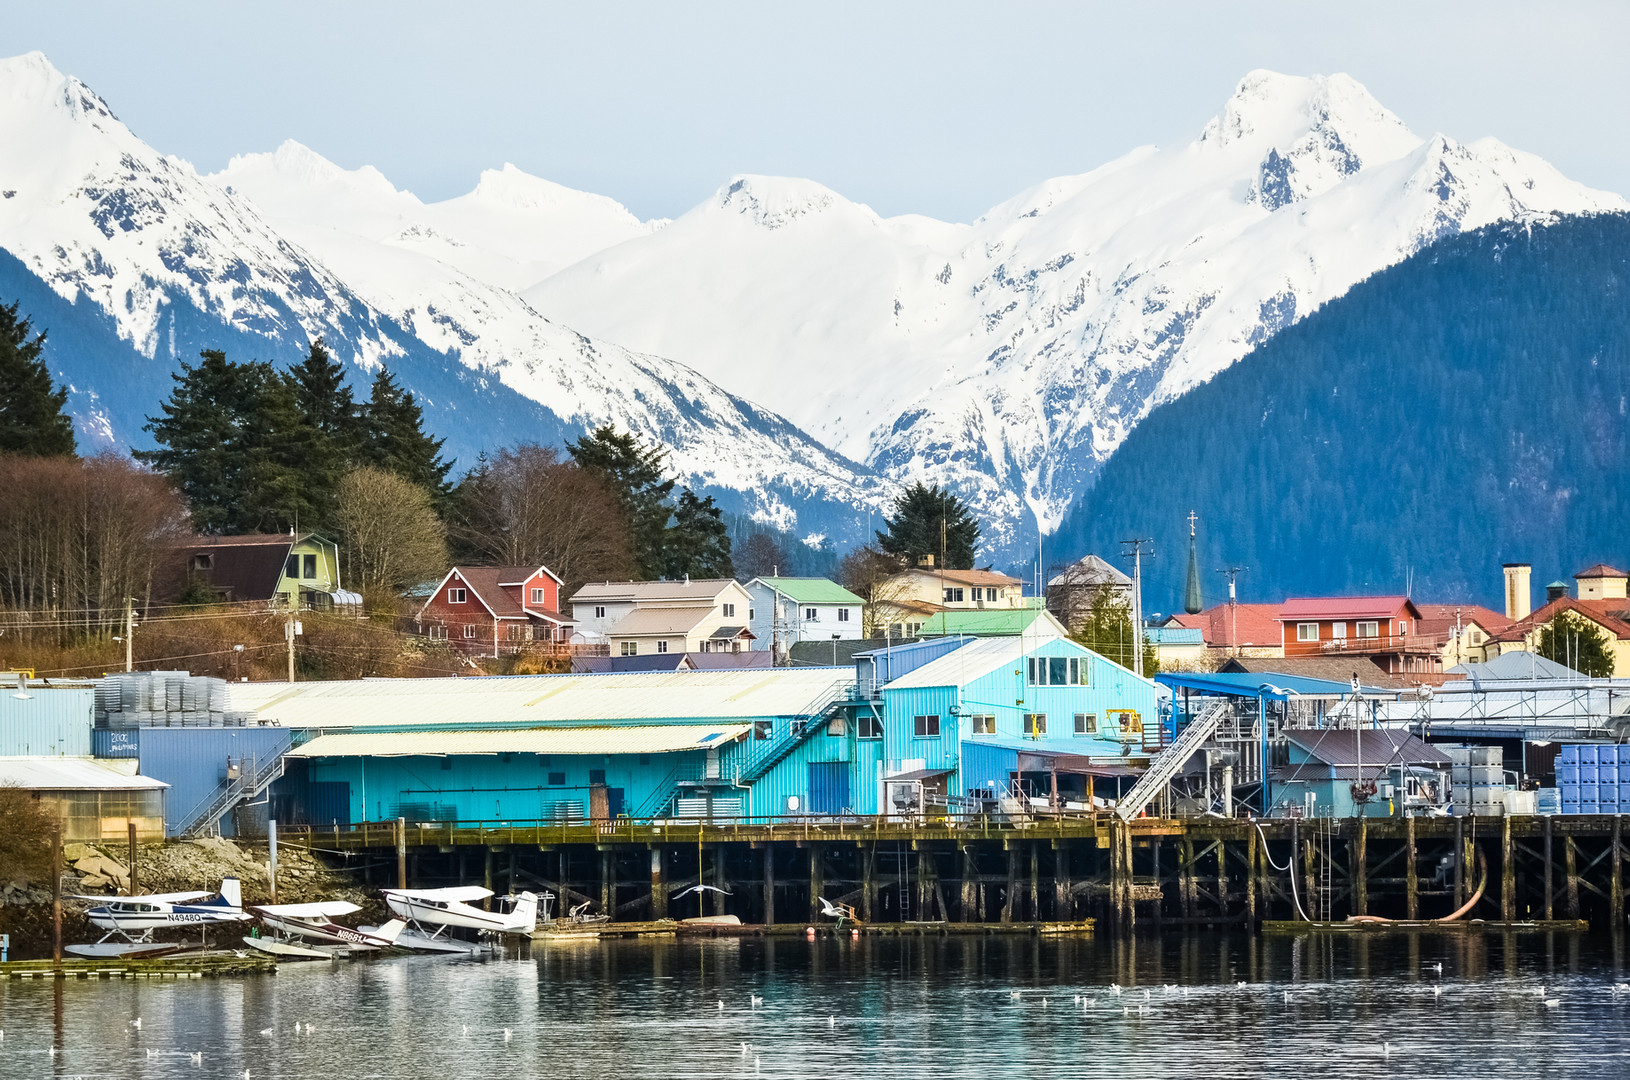 Sitka Alaska Harbor From The Water.jpg